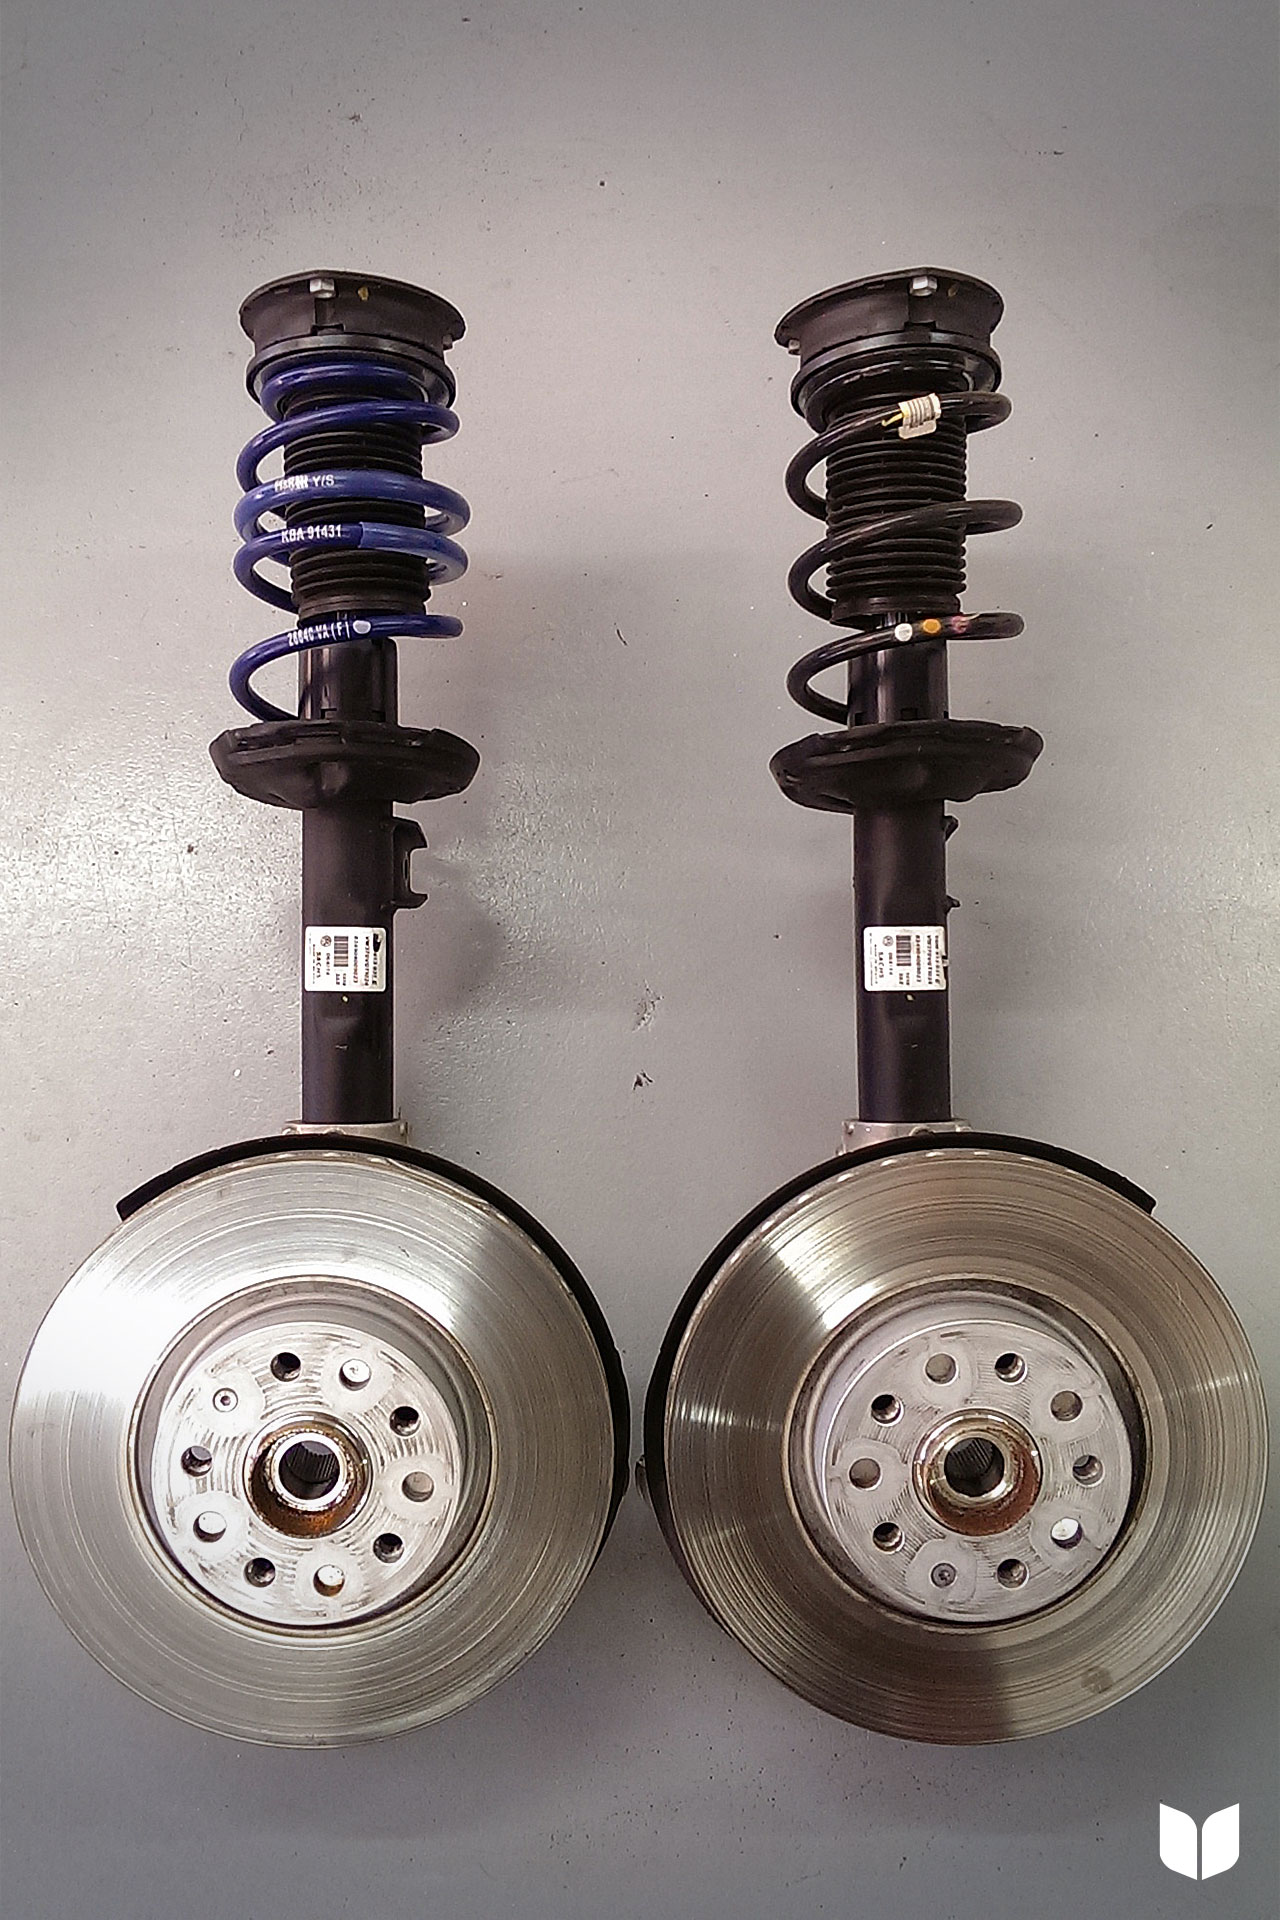 The Mk7 GTI Front Suspension Comparison